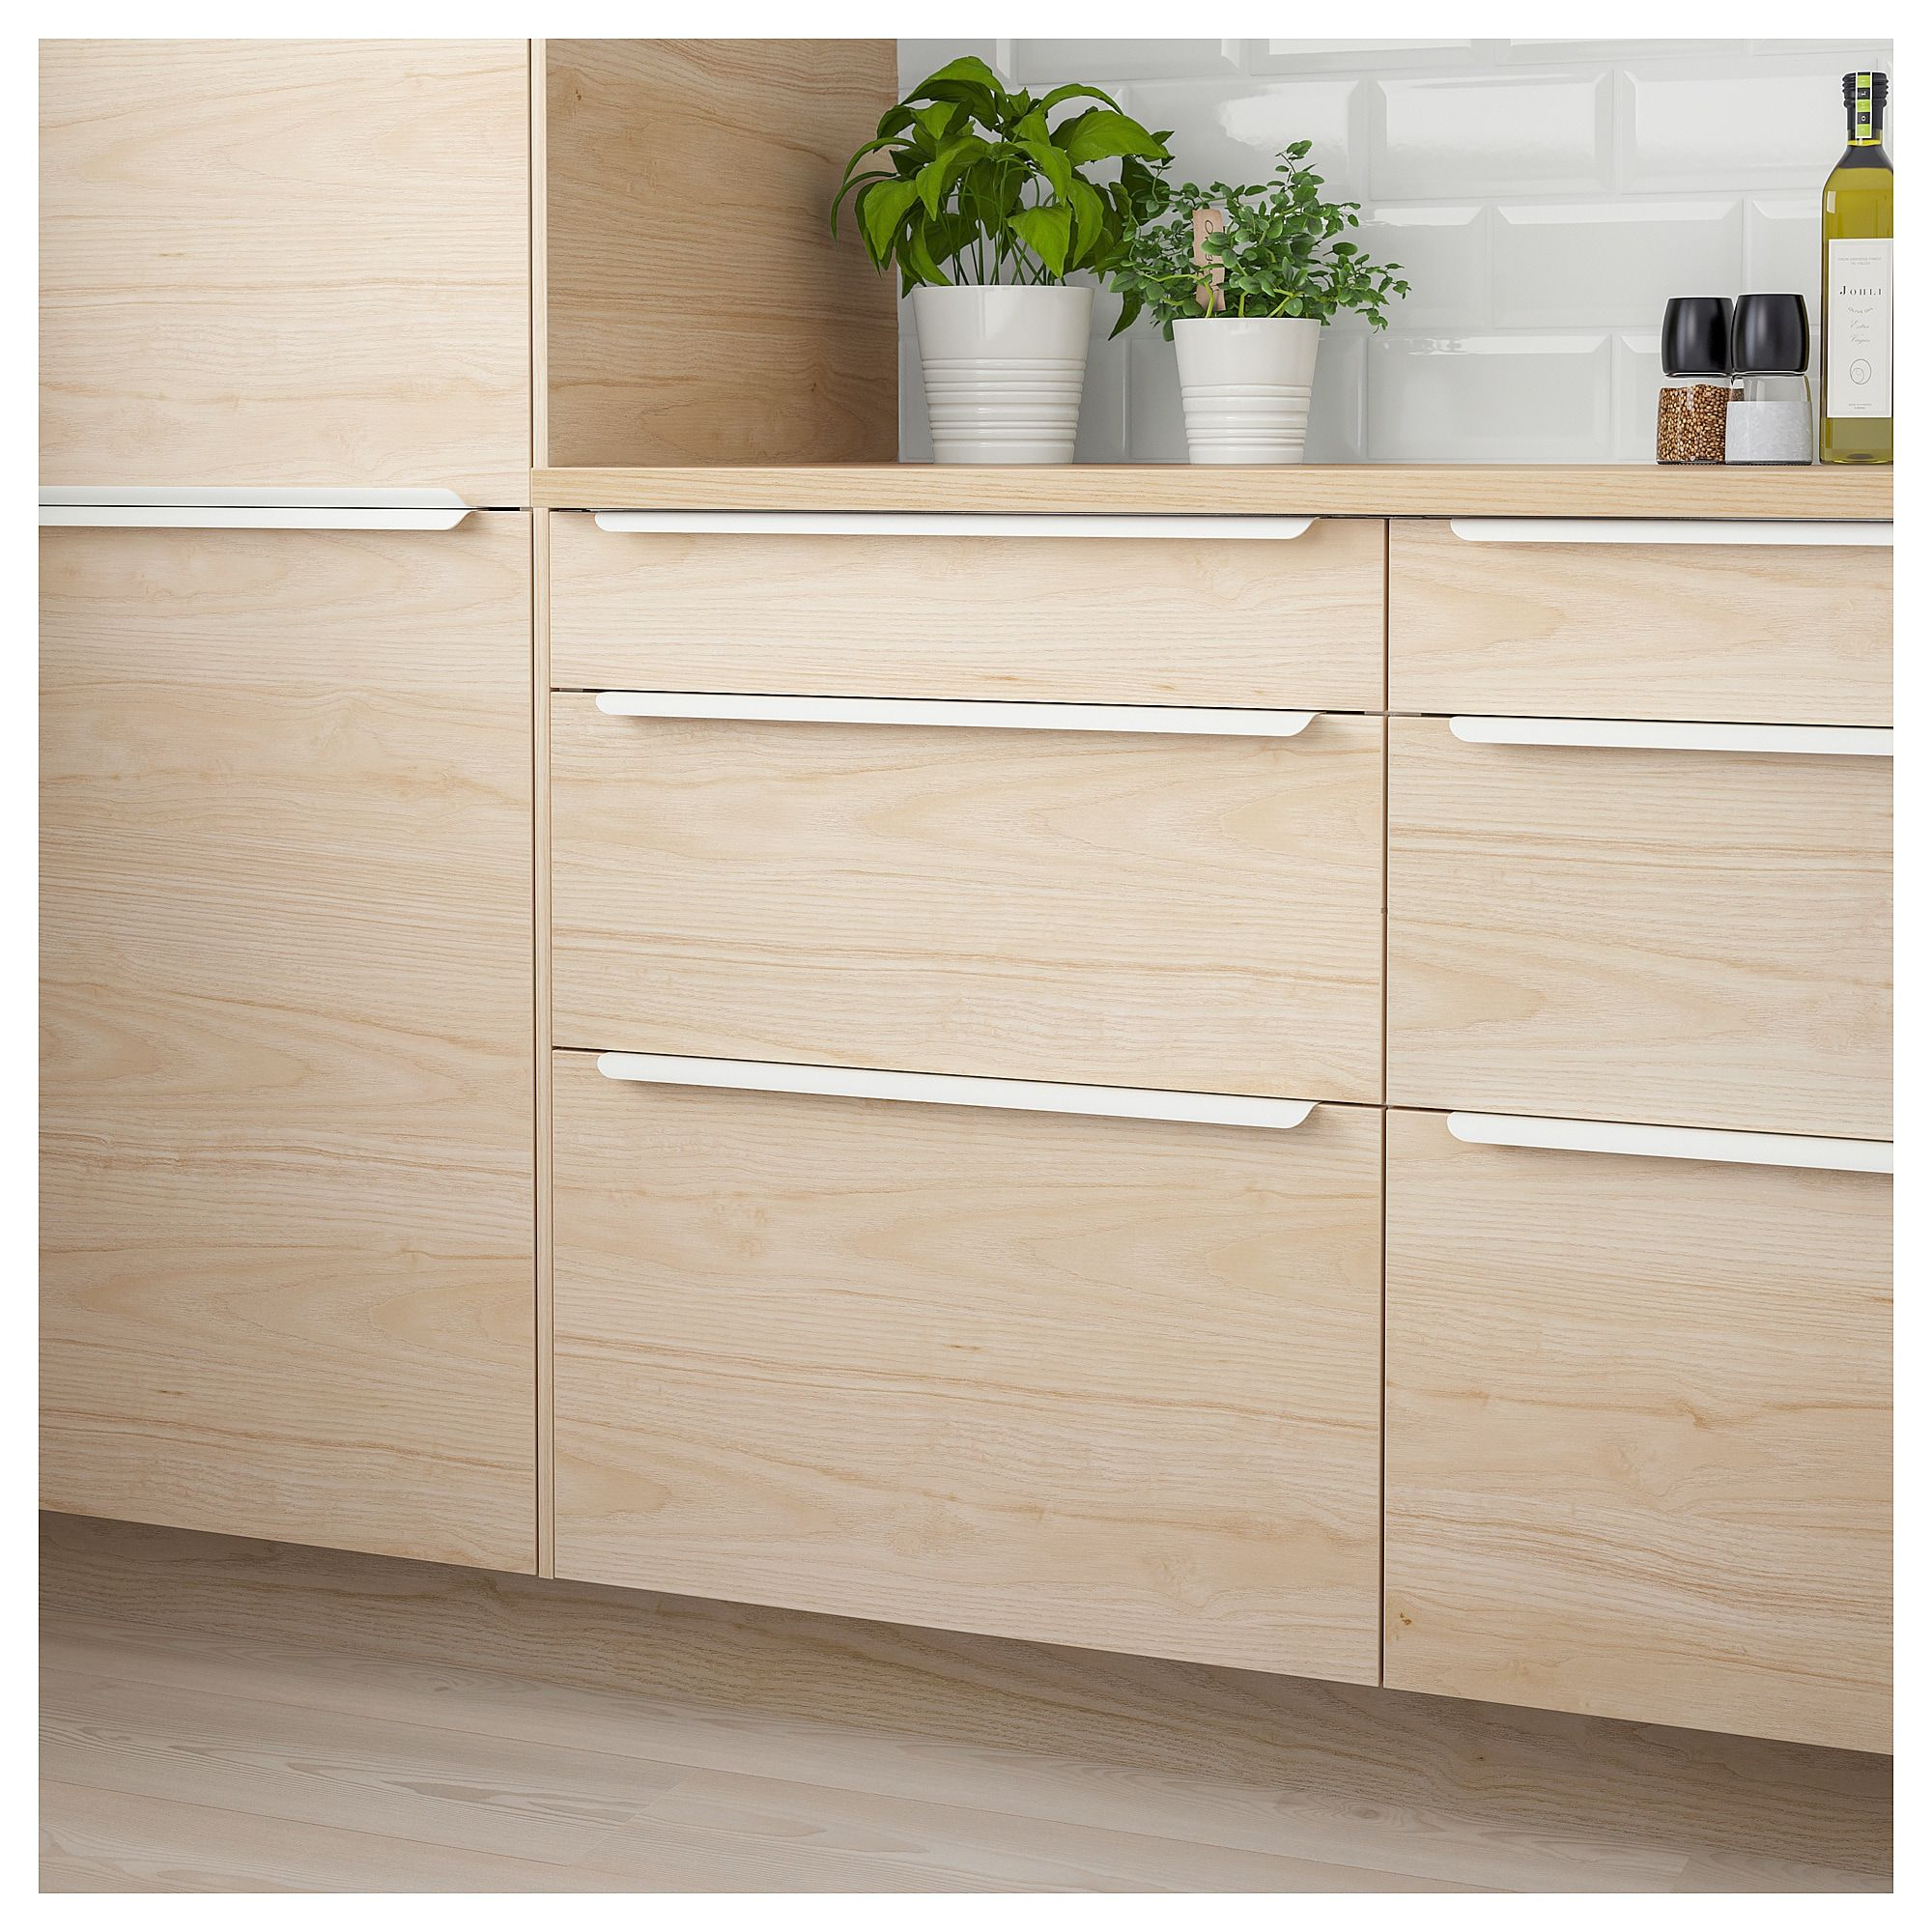 Askersund Drawer Front Light Ash Effect Ash Ikea Canada Ikea In 2020 Drawer Fronts Ikea Kitchen Kitchen Drawers